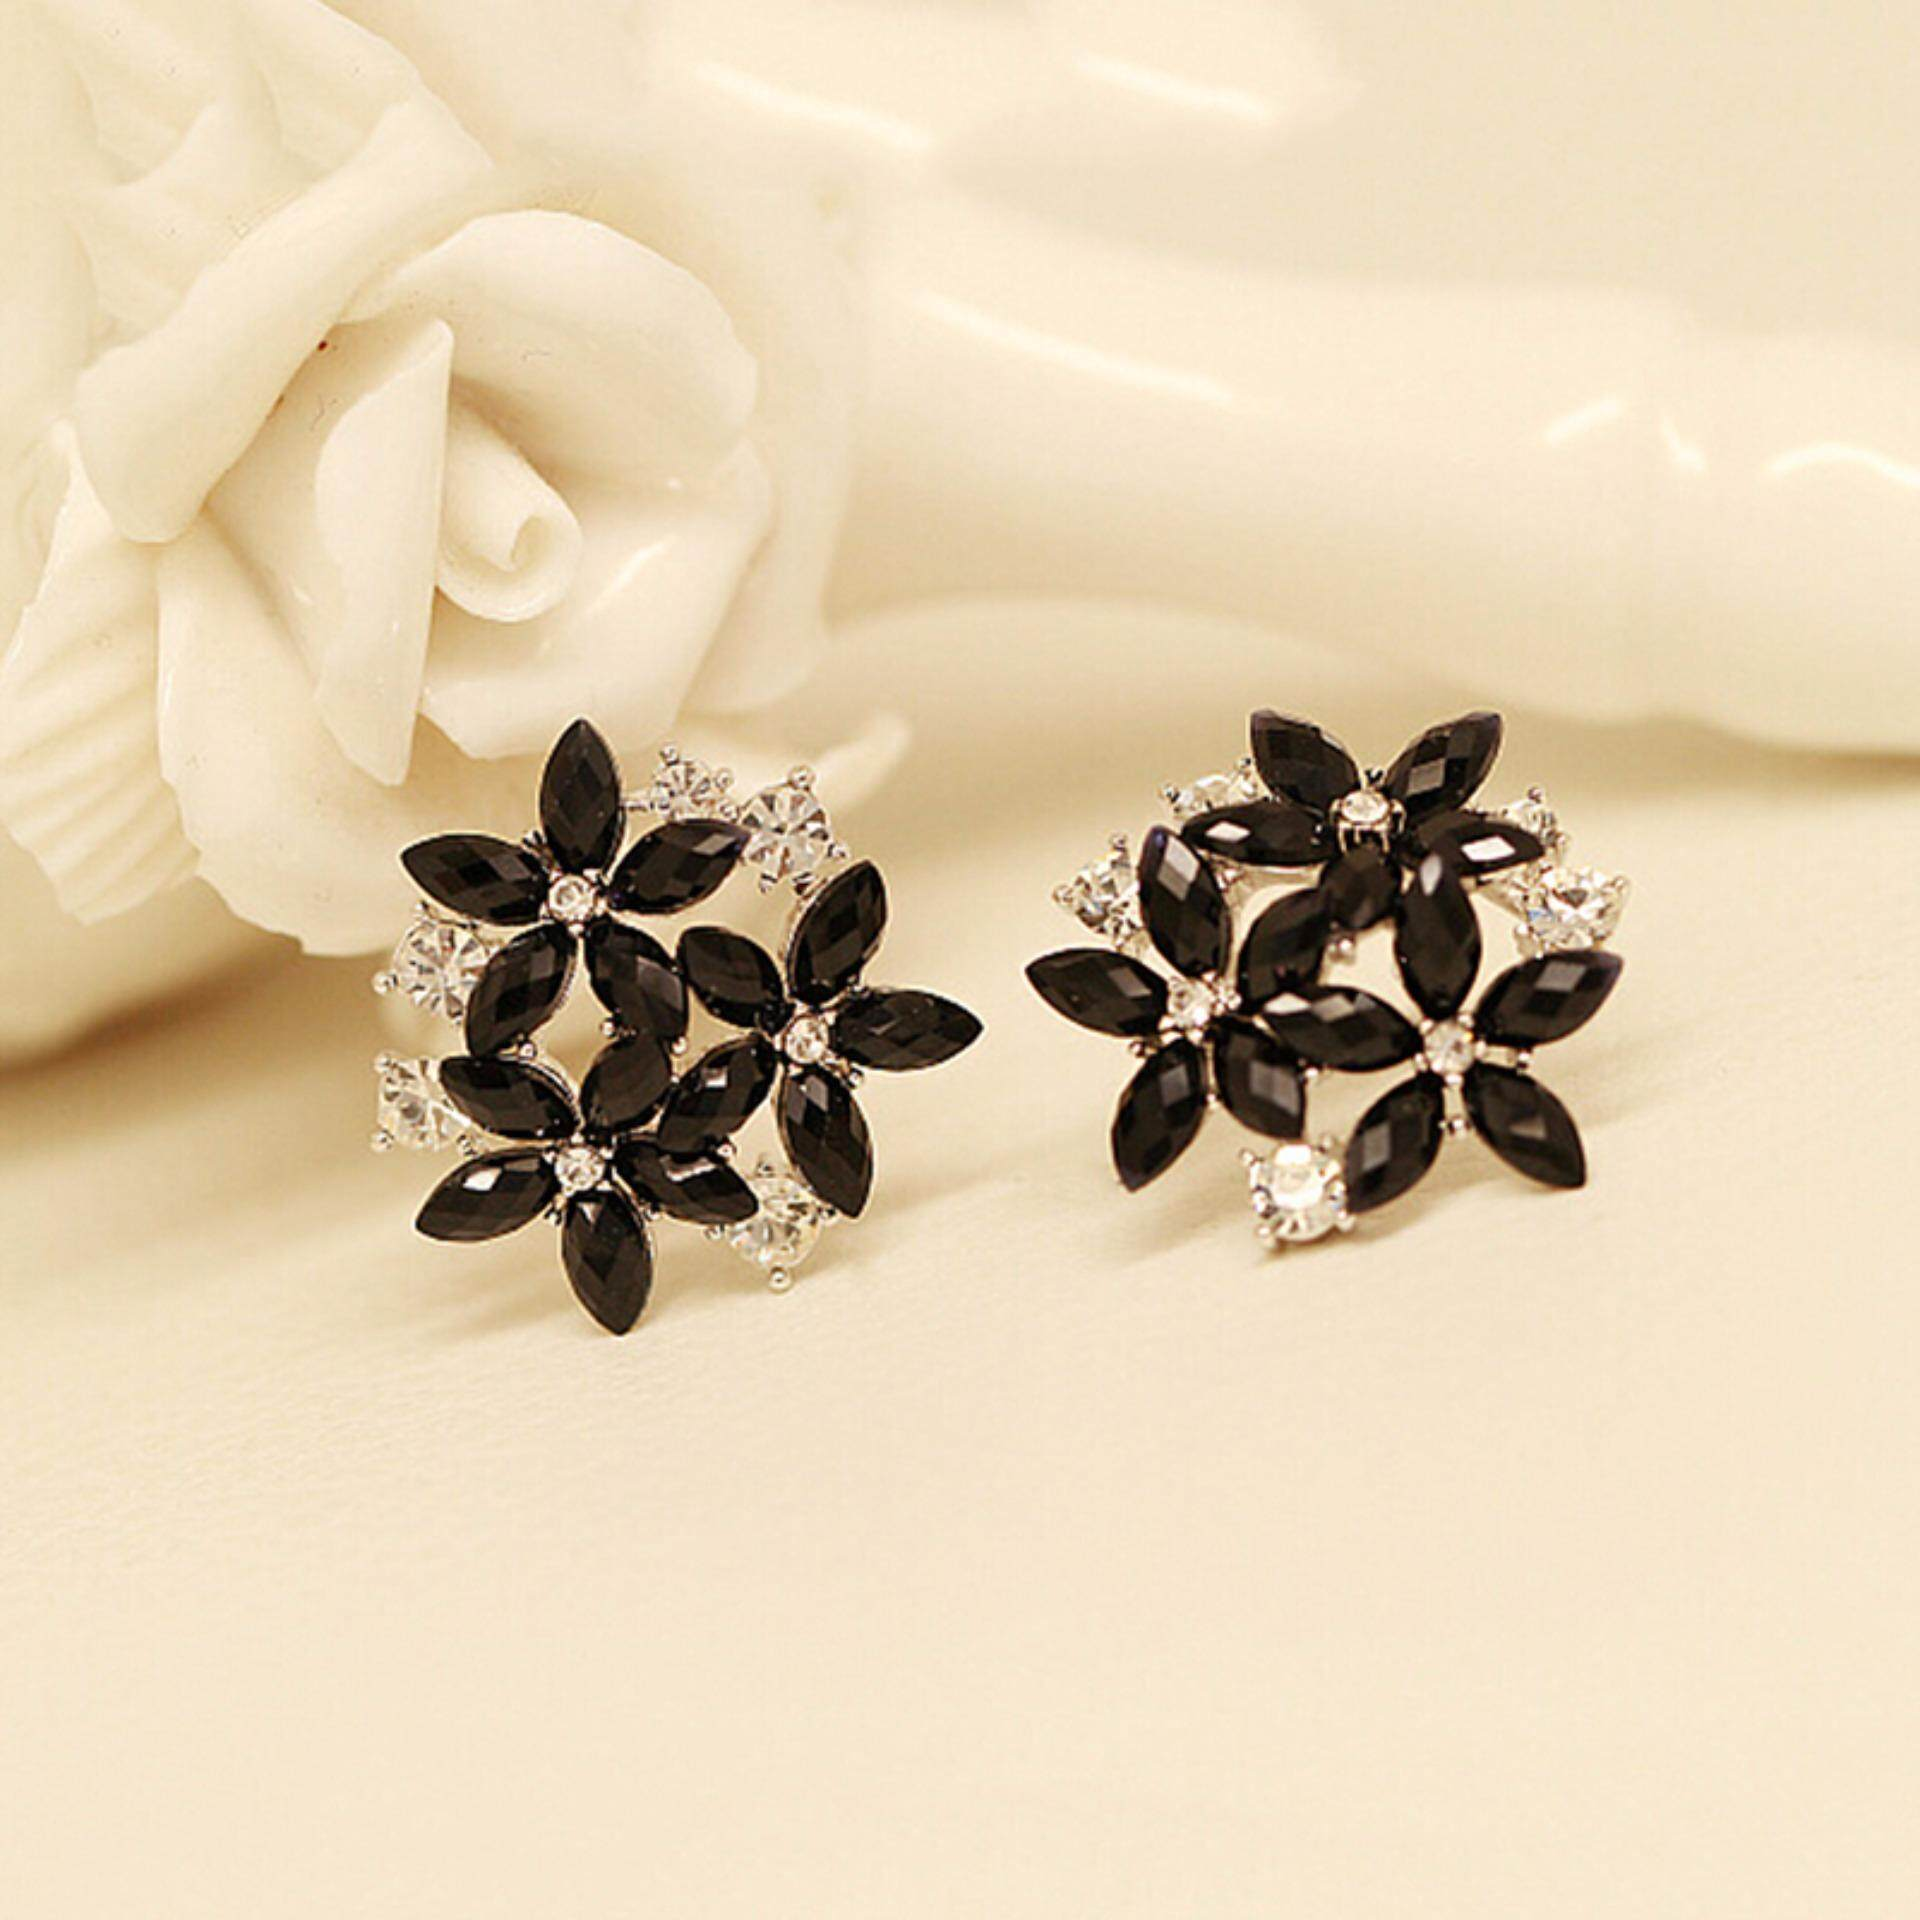 88ebc671cbe Pinellia flowers Women Crystal Stud Earrings 3 Flower Brincos Pendientes  Earrings Black